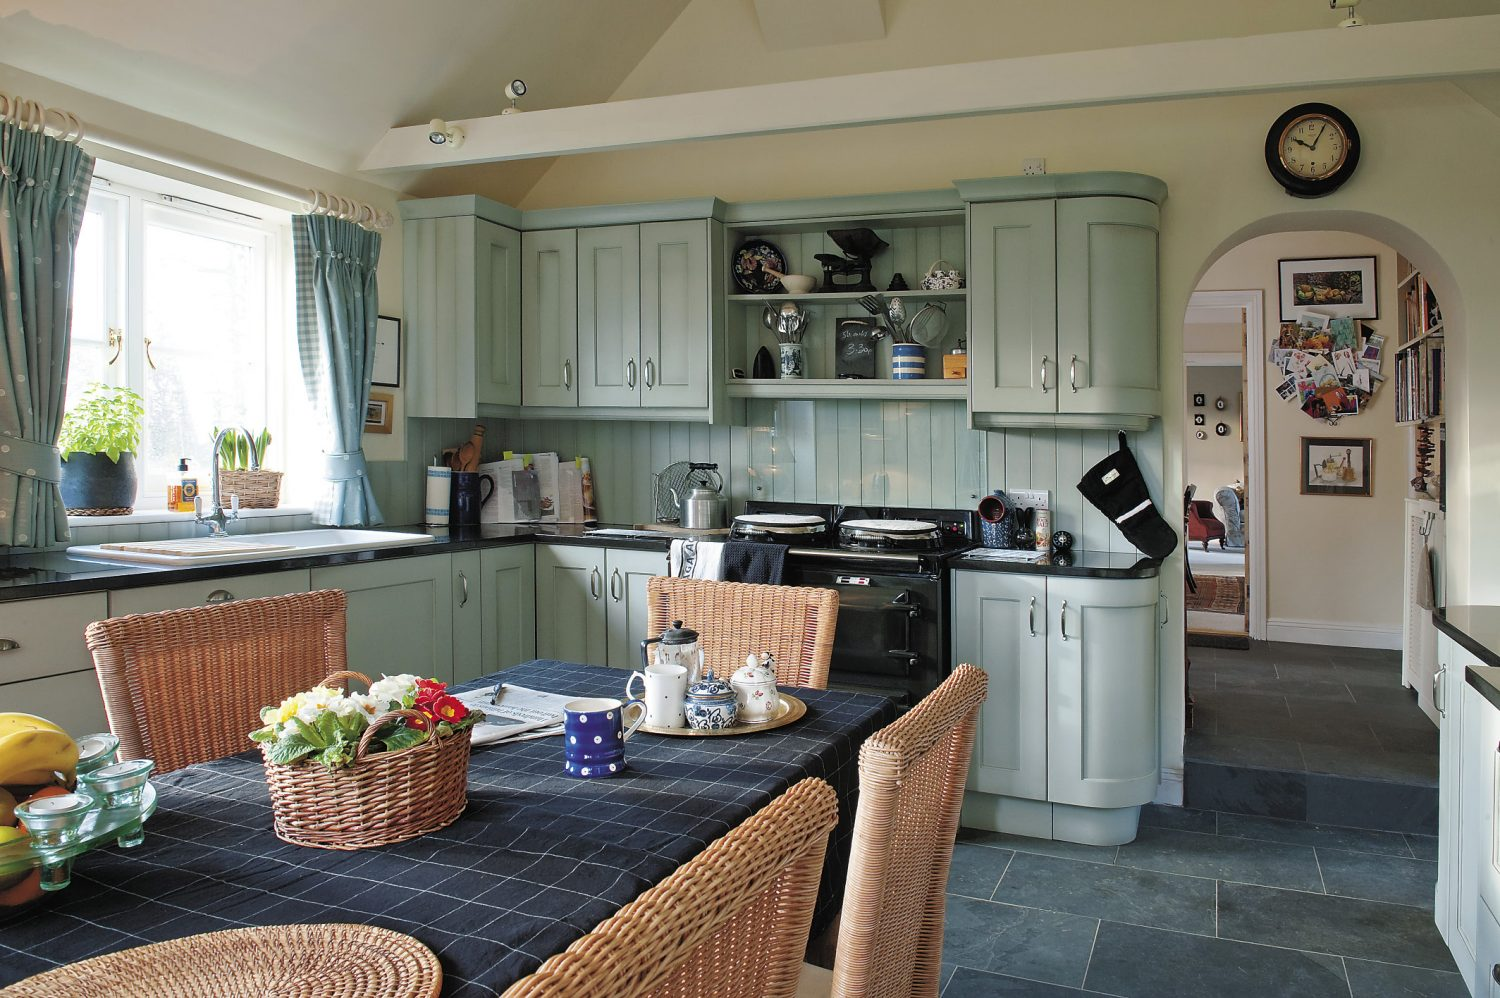 the extended kitchen was fitted by JM Kitchens bottom the original kitchen is now used as a scullery